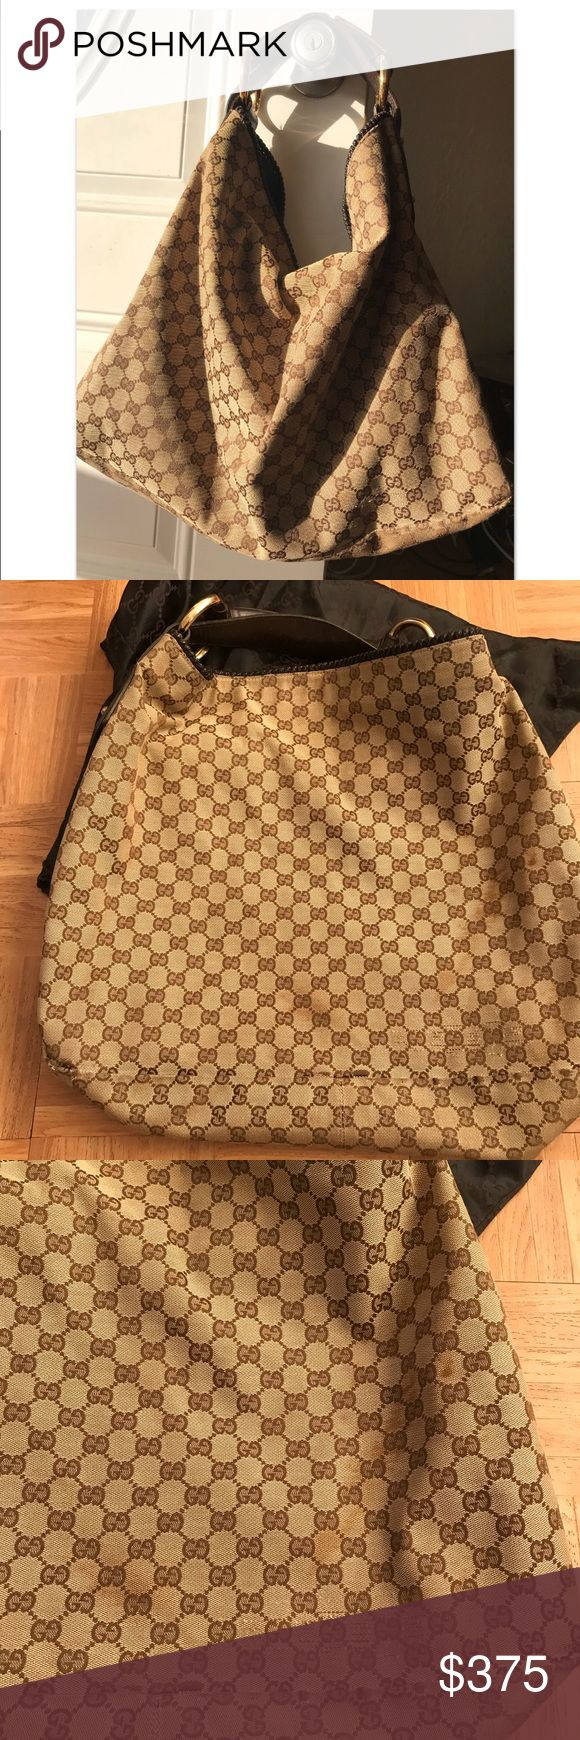 100% authentic large GUCCI hobo Large Gucci Hobo used but still beautiful. No stains or rips inside. Some wear as expected on bottom corners but nothing obvious. stain on one side but it blends in with the brown and it's not obvious unless you are actually looking for it. Hard to find bag, doesn't make anymore. Dust bag included. I have receipt but it faded over the years. You can see some words in certain angles. Gucci Bags Hobos